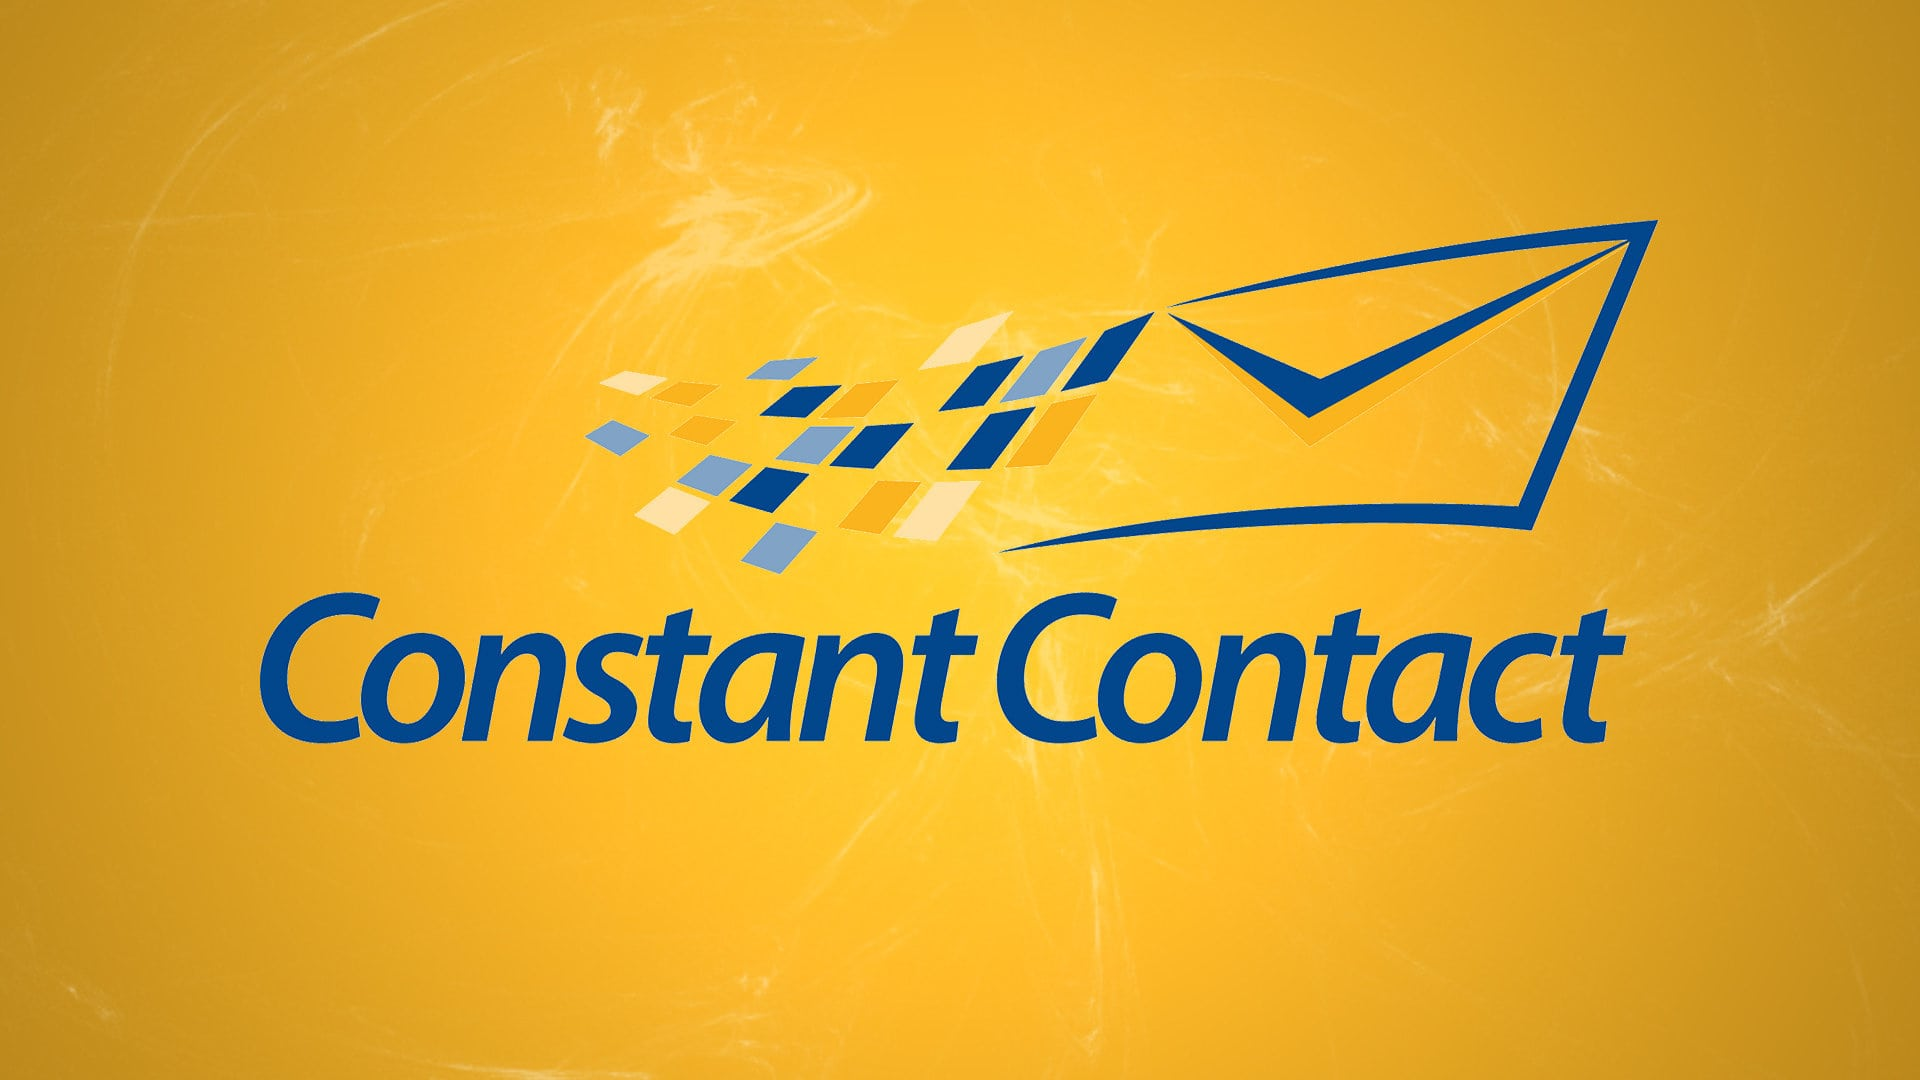 Constant Contact Promo Coupon Code